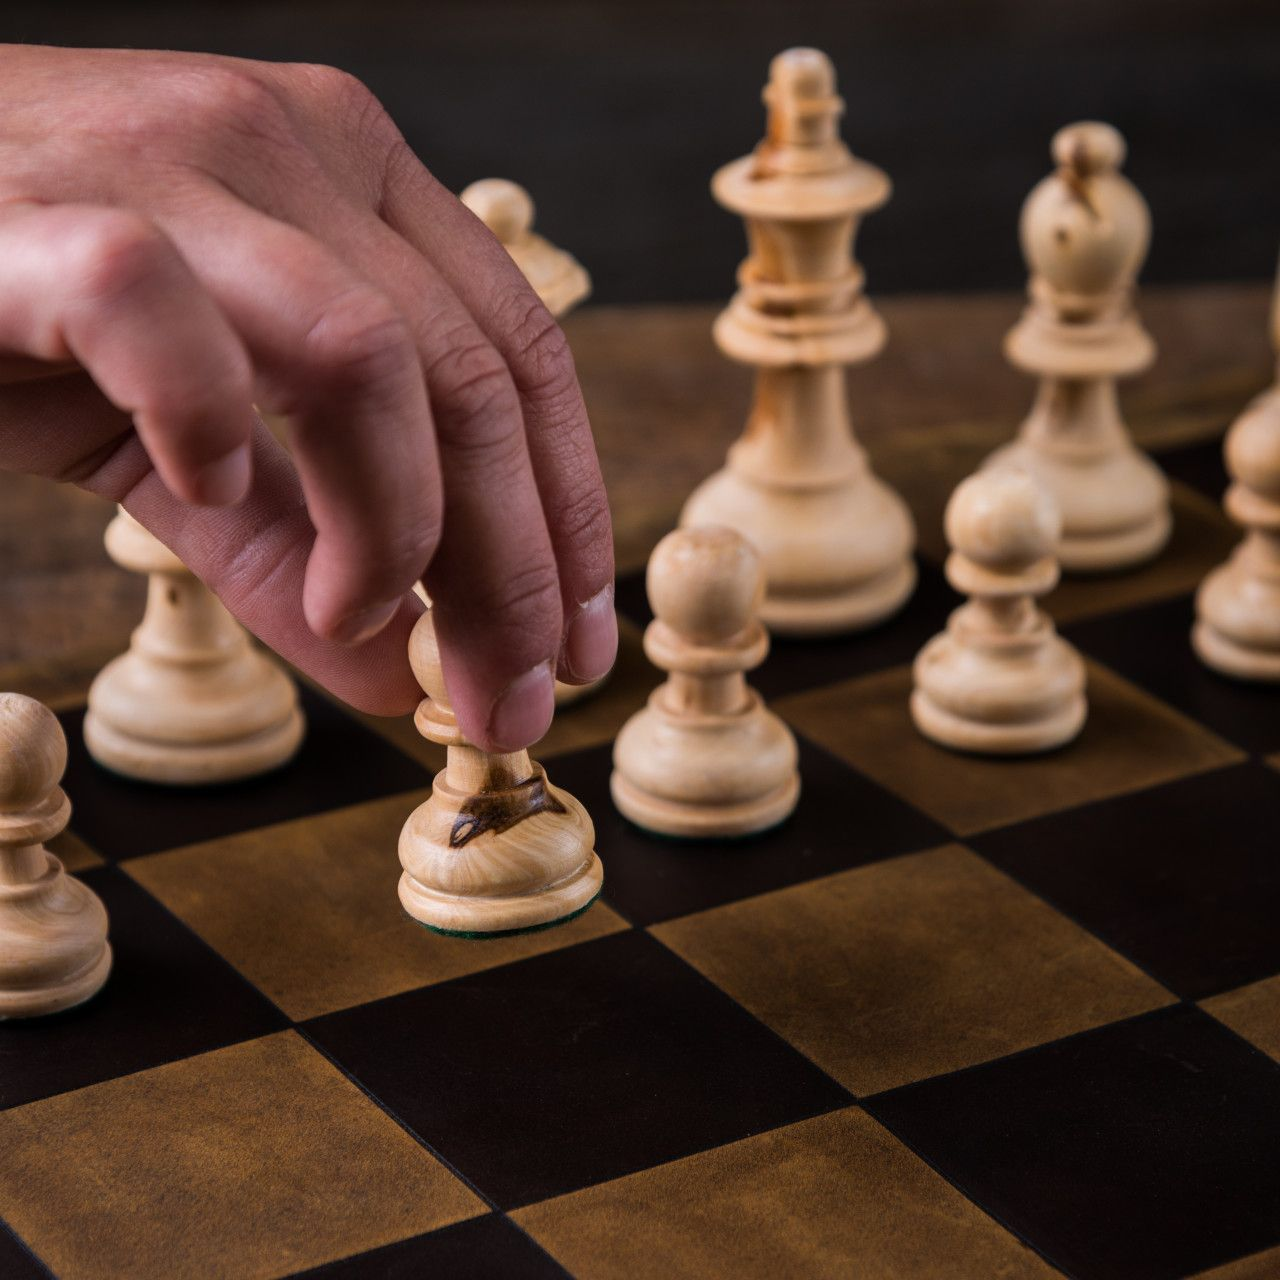 A leather chess and checkers set large in tobacco leather chess seen during the game